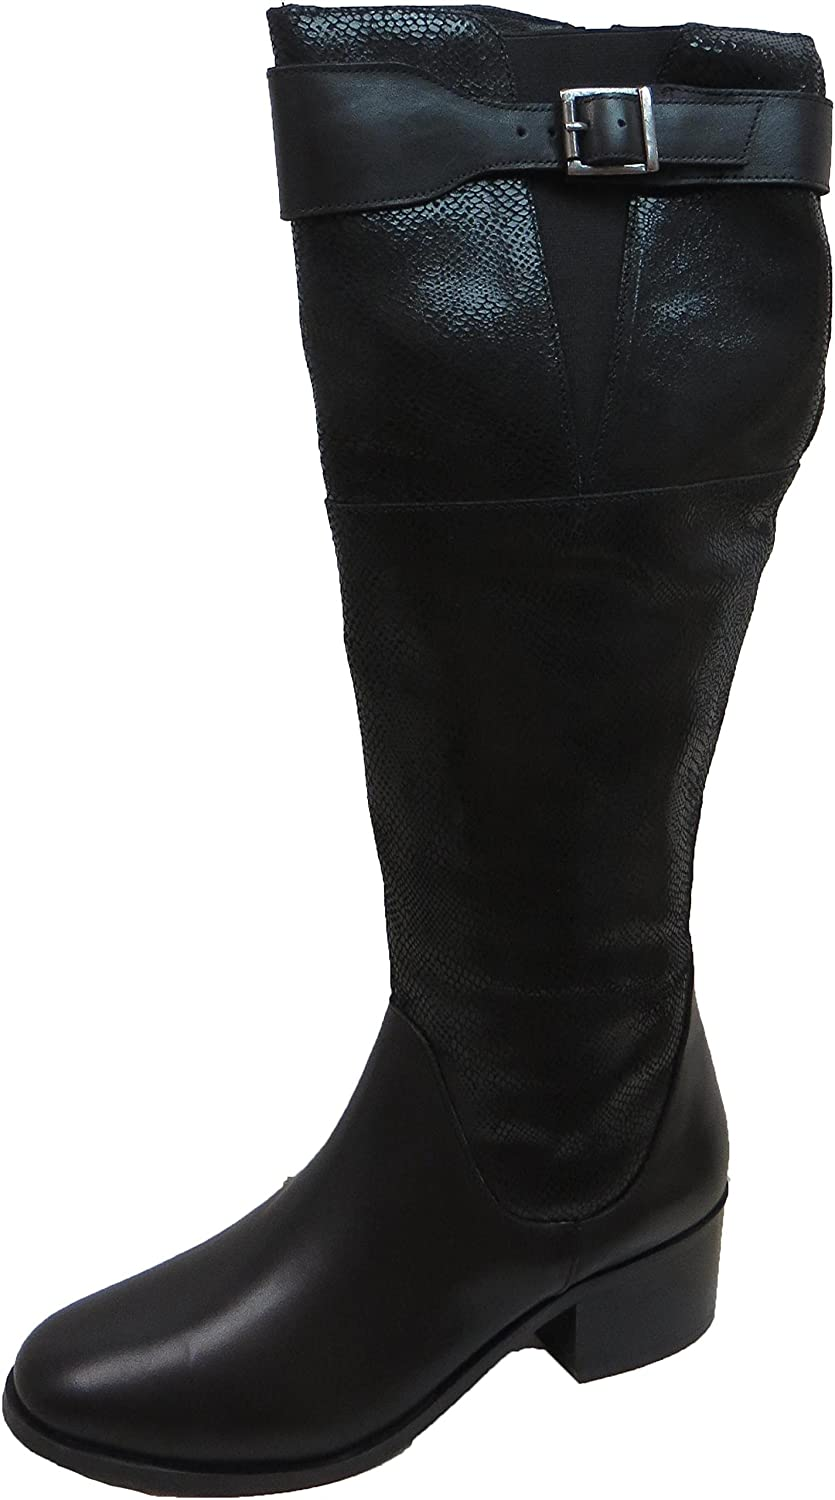 0832e912104 Ravel Women s Gordo Leather Knee High Boots  Amazon.co.uk  Shoes   Bags